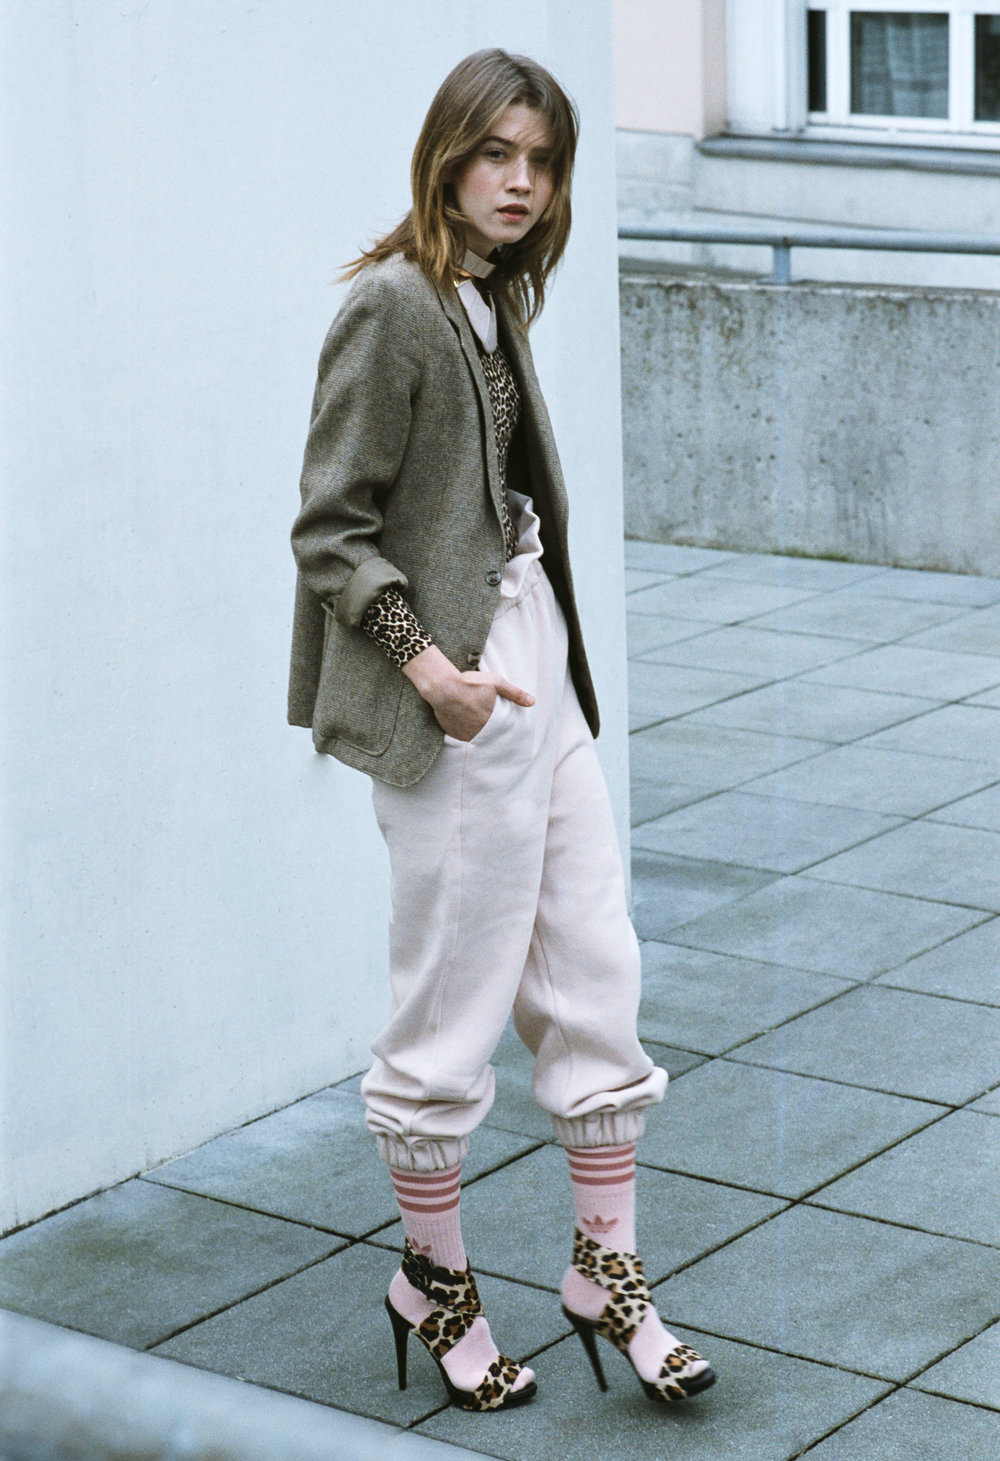 trousers MARINA HOERMANSEDER, body AMERICAN APPAREL, jacket VINTAGE, socks ADIDAS,  necklaces  ASOS + H&M, shoes  ZARA